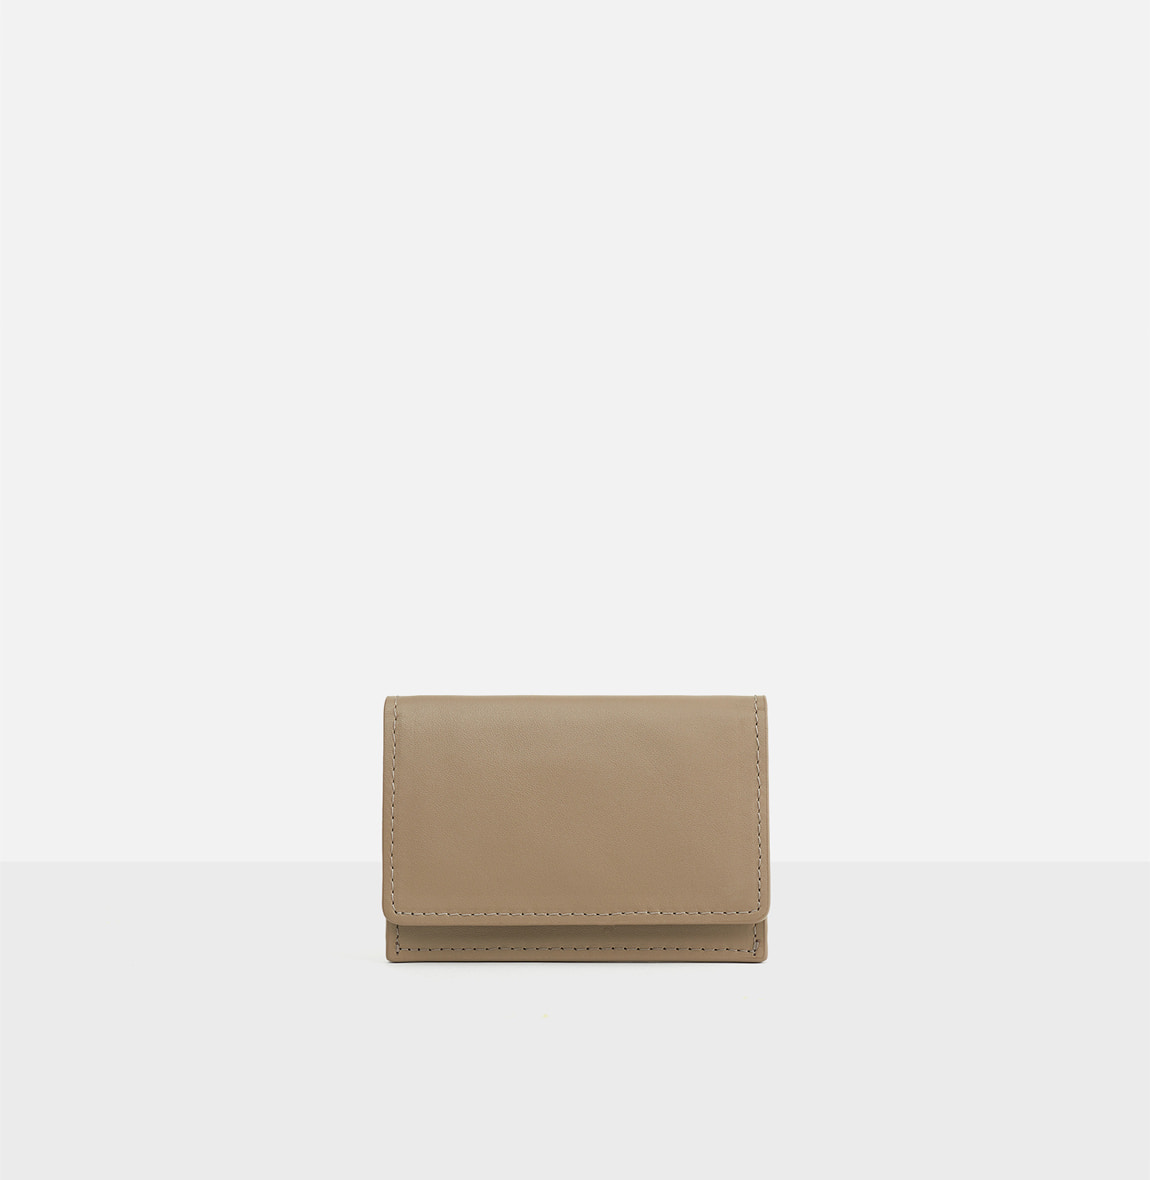 ROH Flap card wallet objet Beige